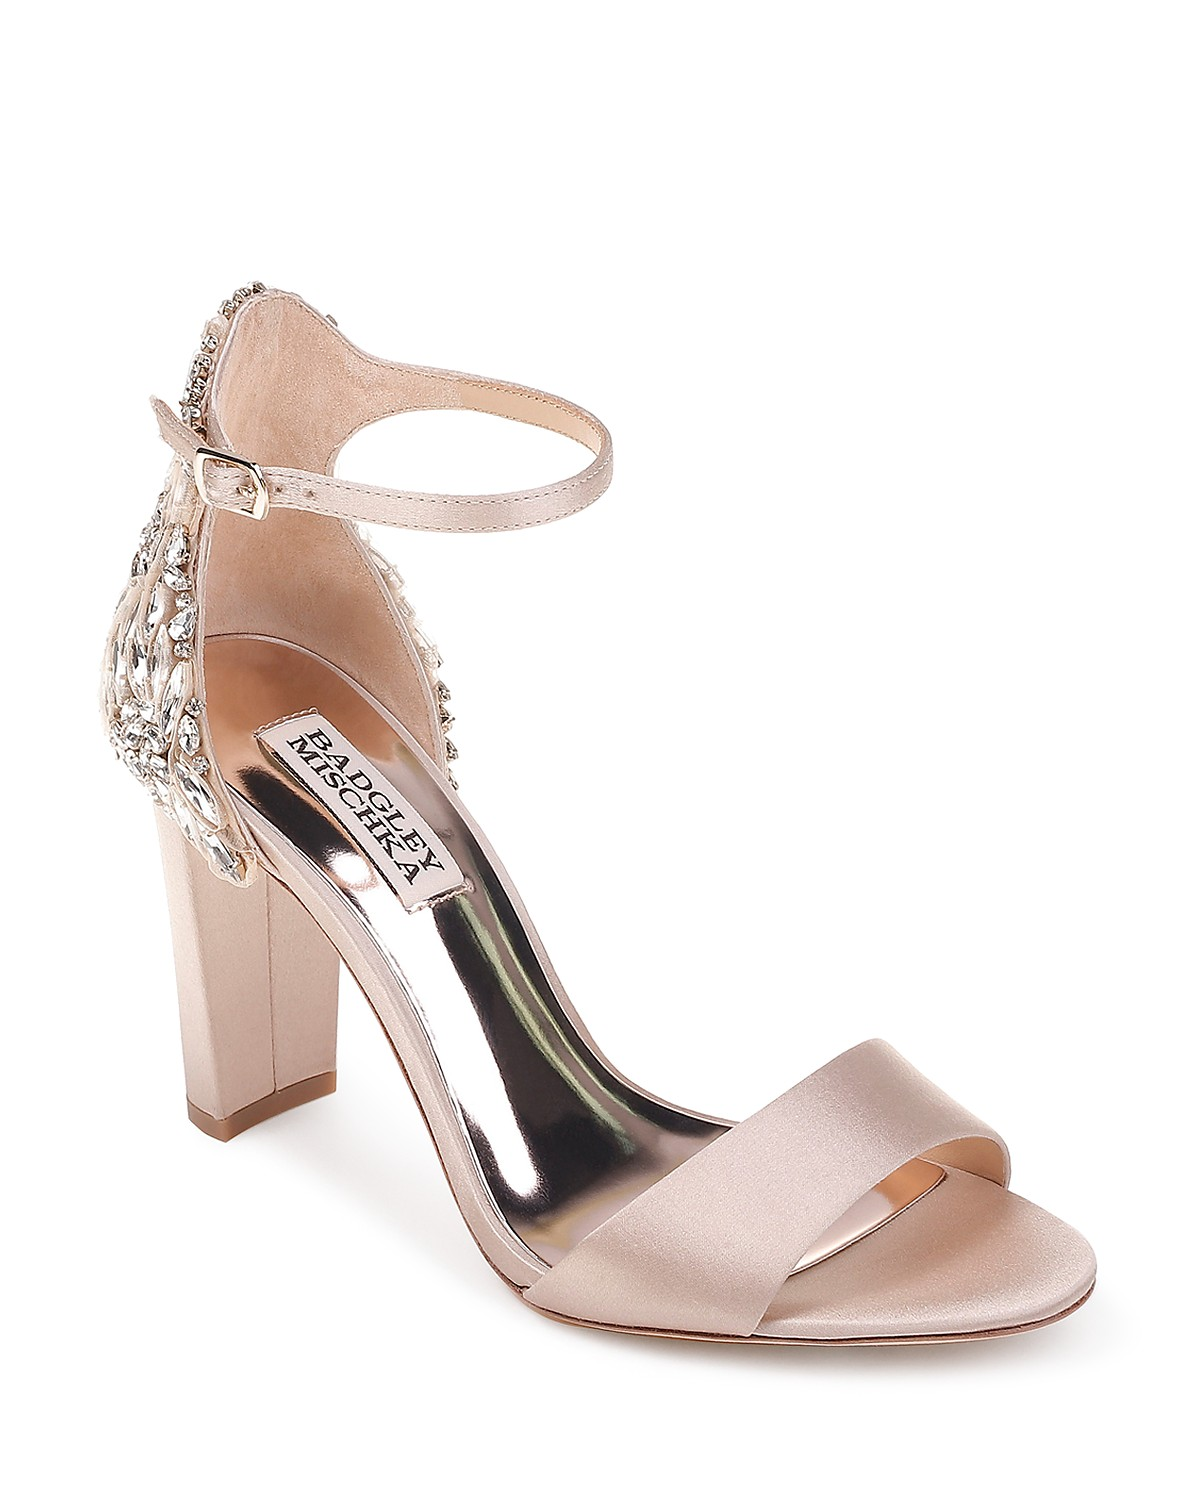 Badgley Mischka Women's Seina Embellished Satin Ankle Strap Sandals NvtubuT